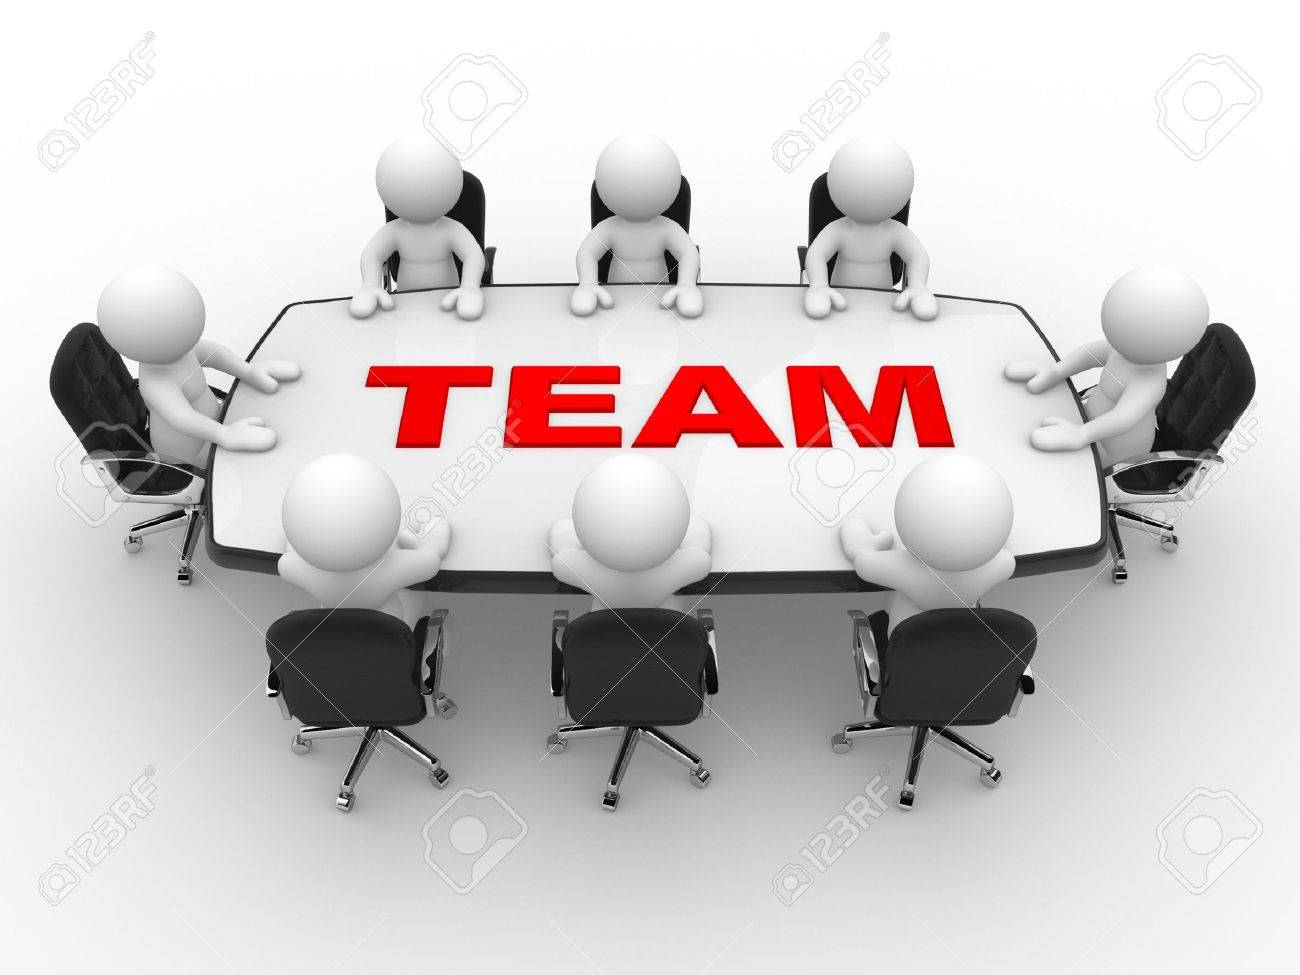 3d people - men, person at conference table. Teamwork Standard-Bild - 17640073